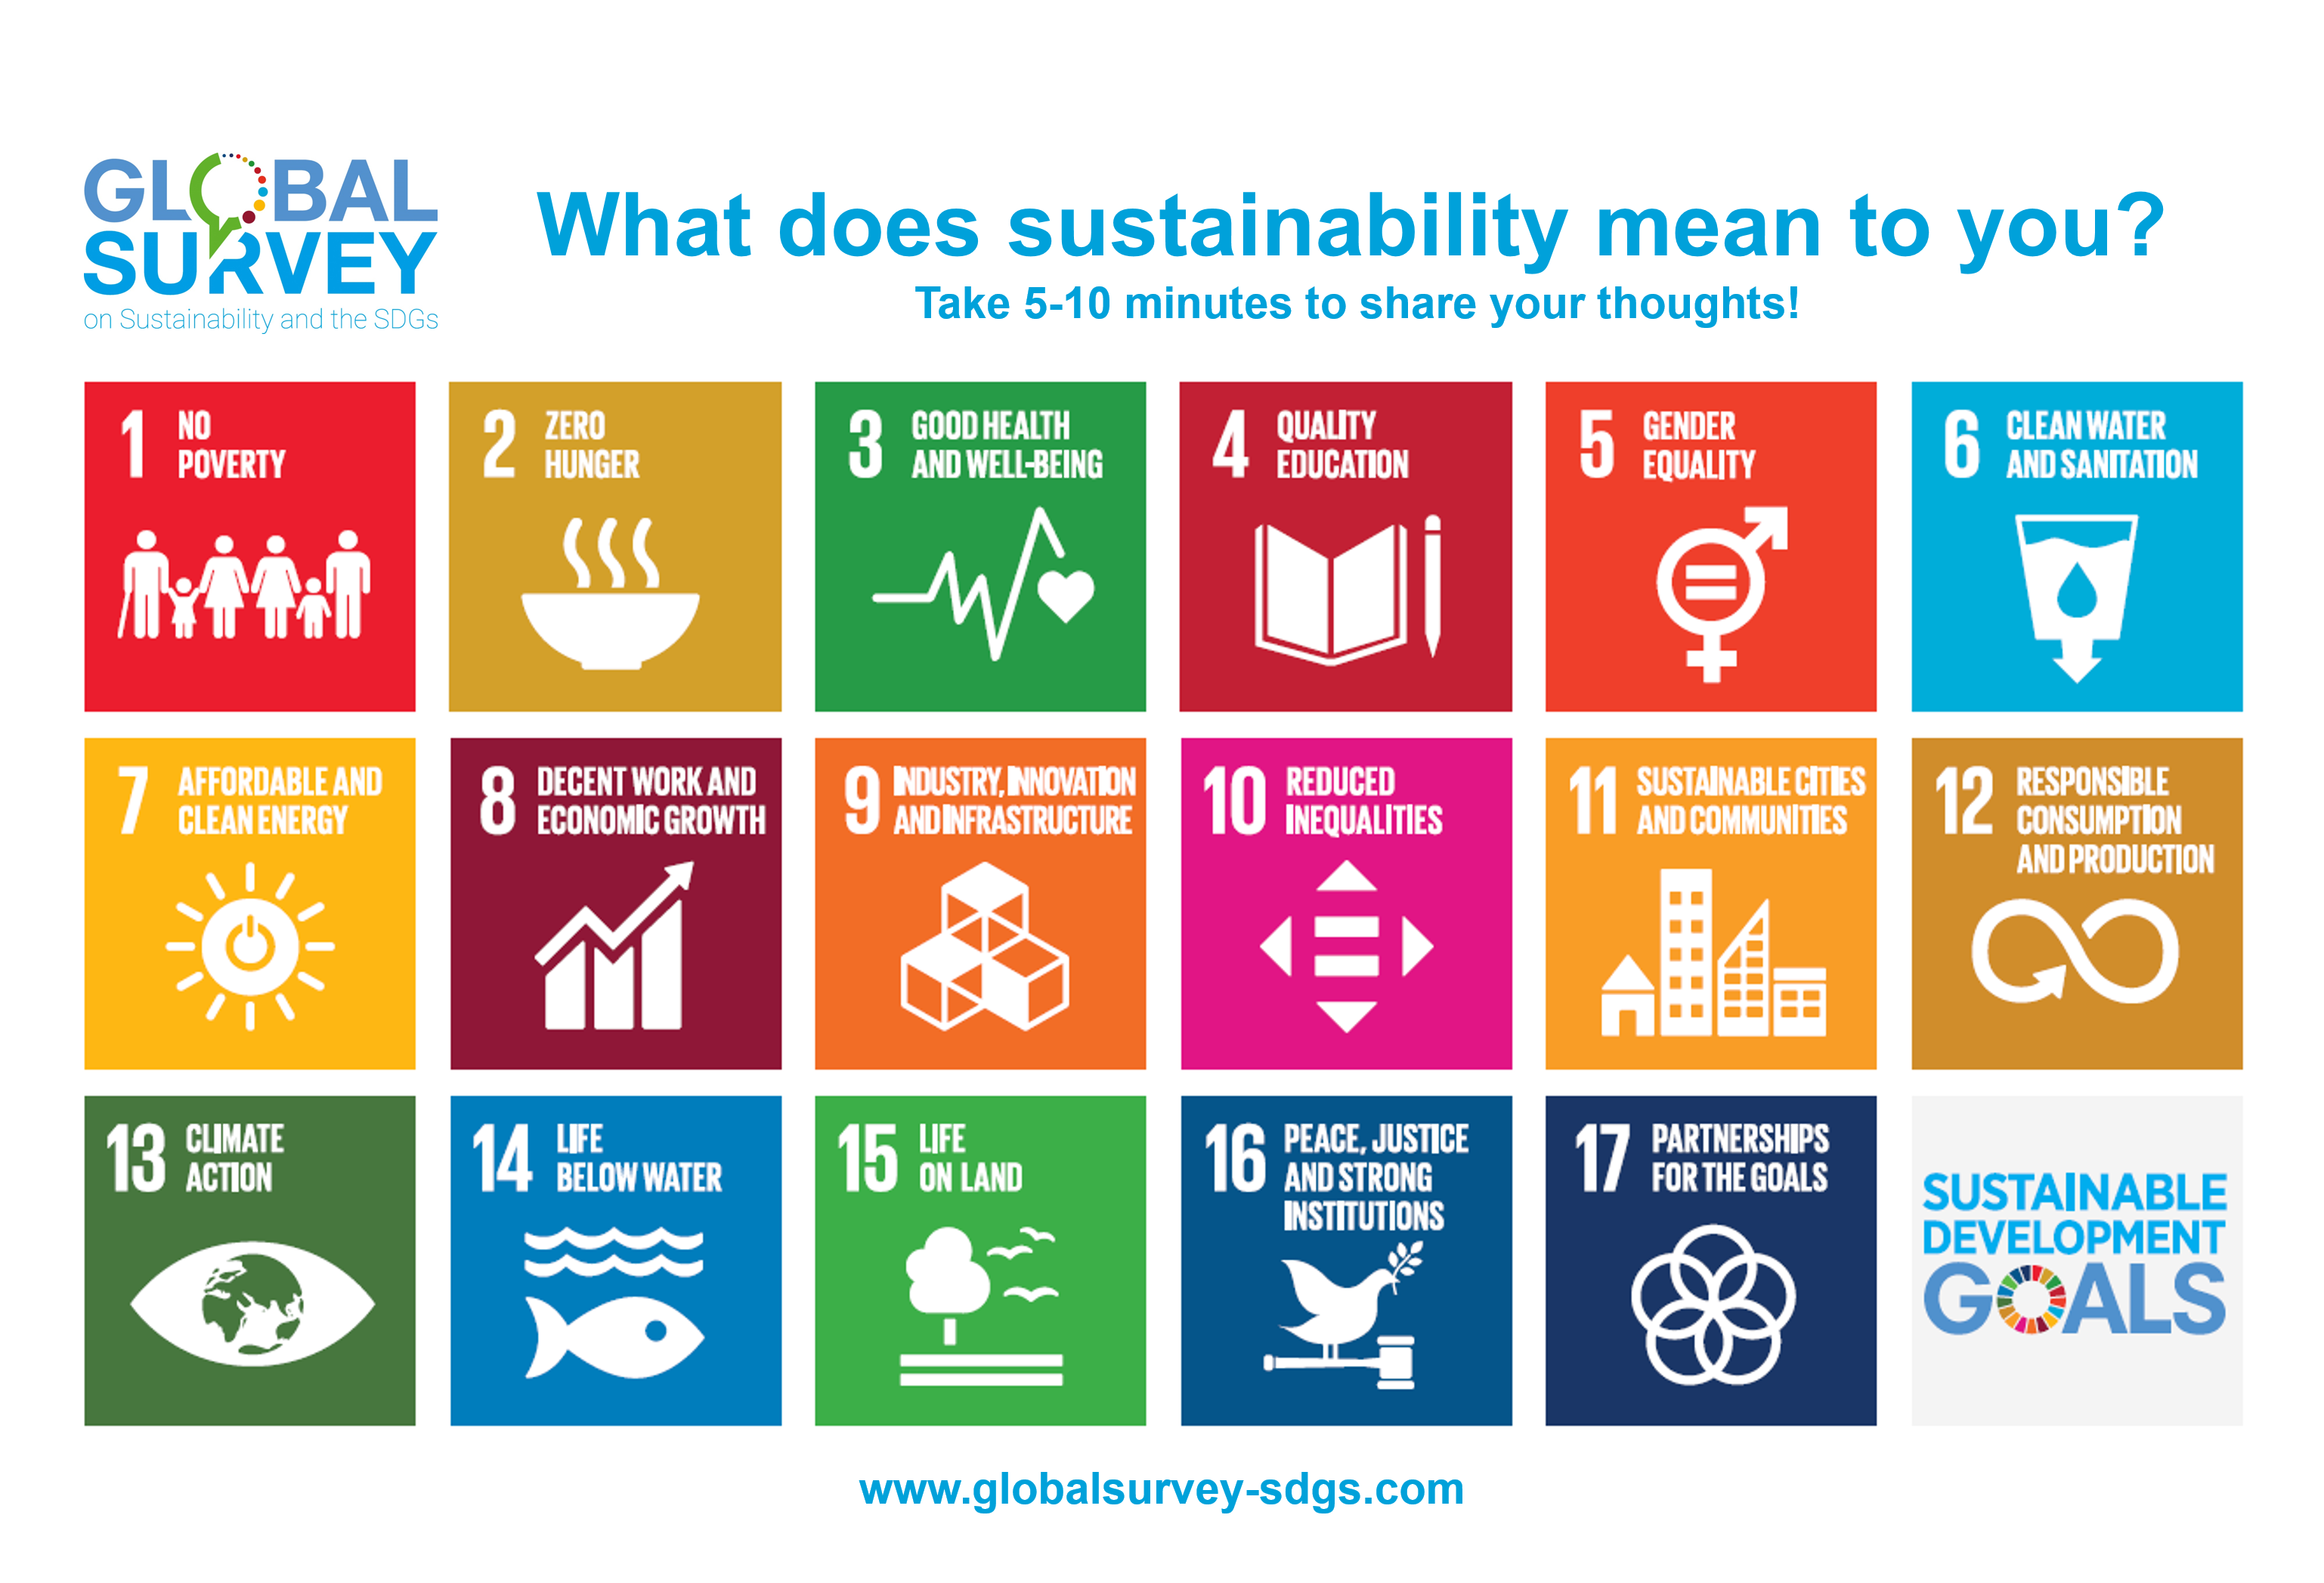 Global Survey graphic including logo and SDGs